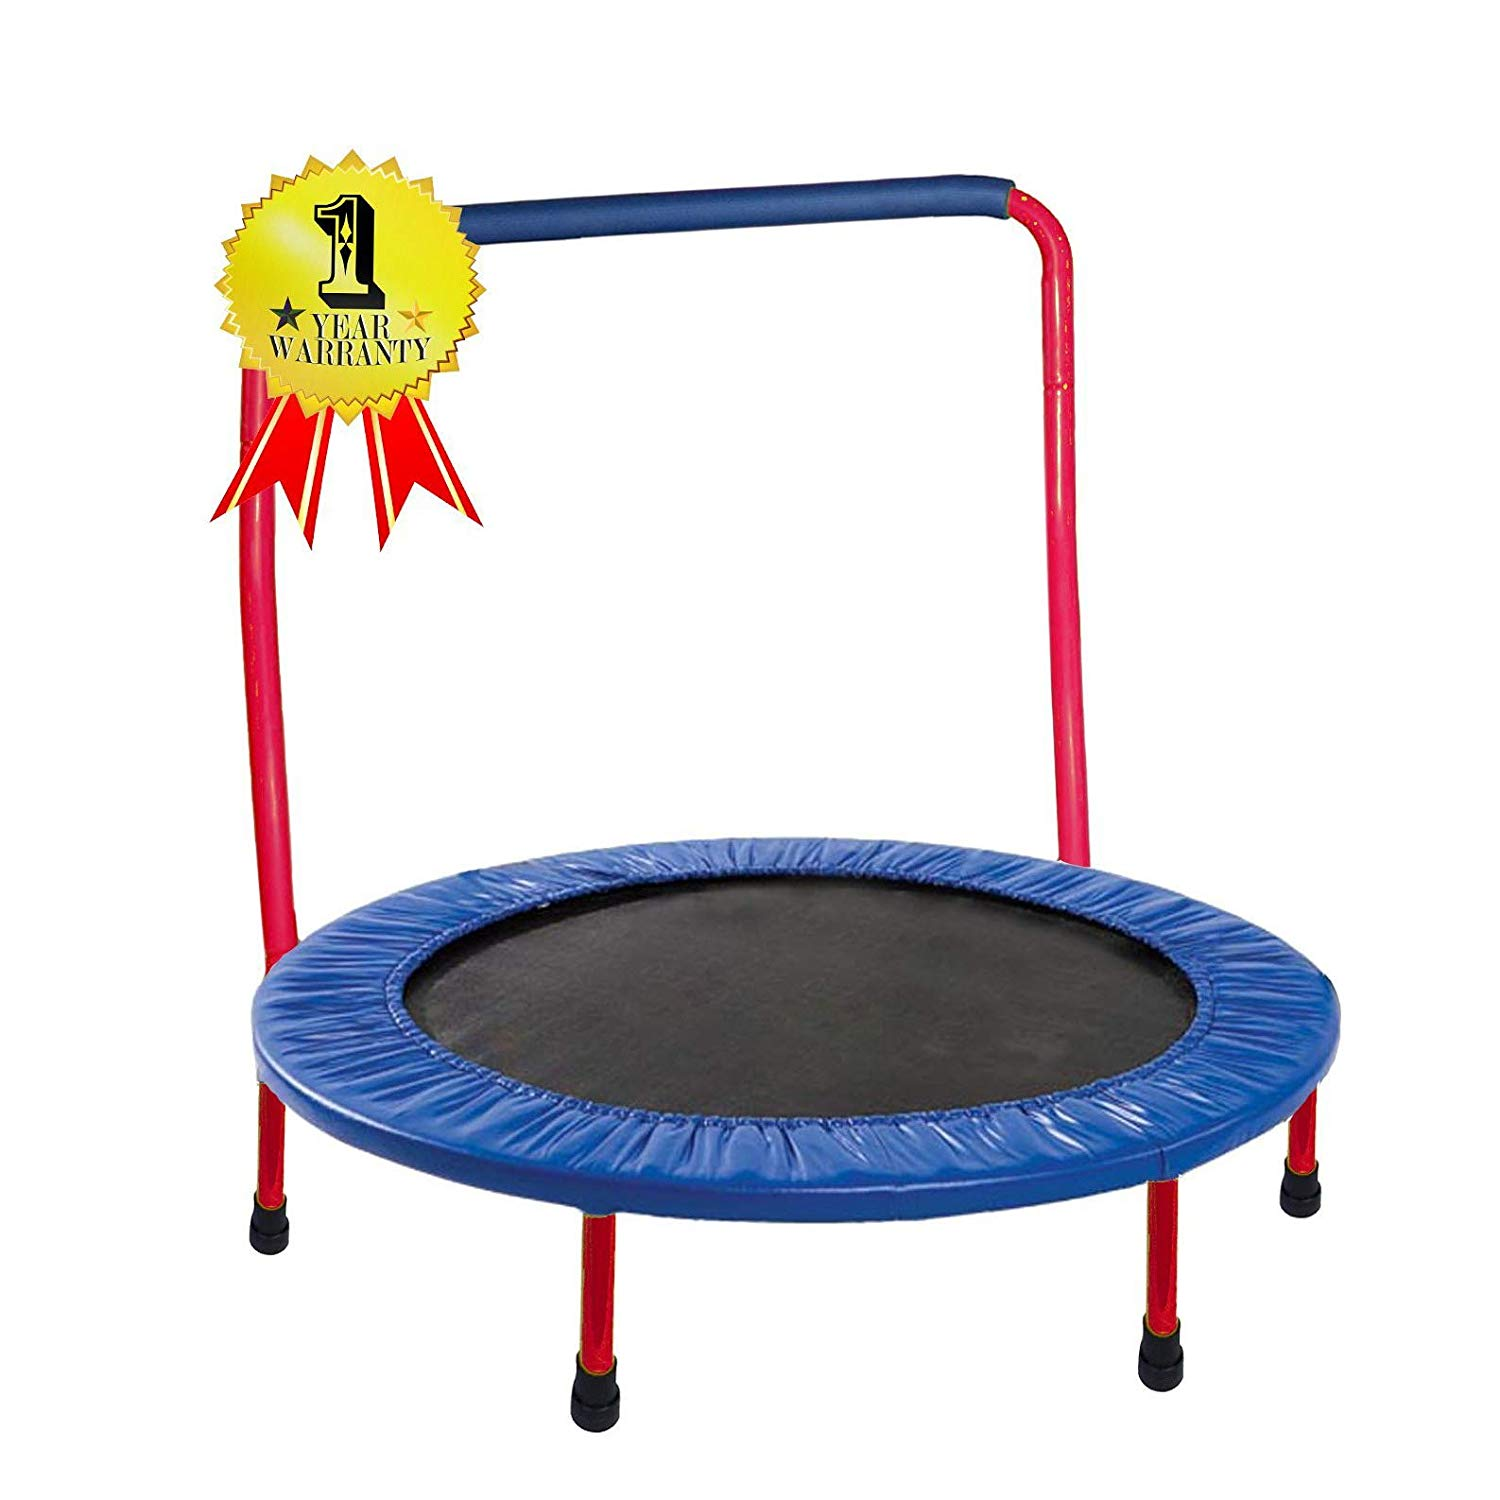 Jumjoe Kids Trampoline- 36 inches with a handlebar, safety portable